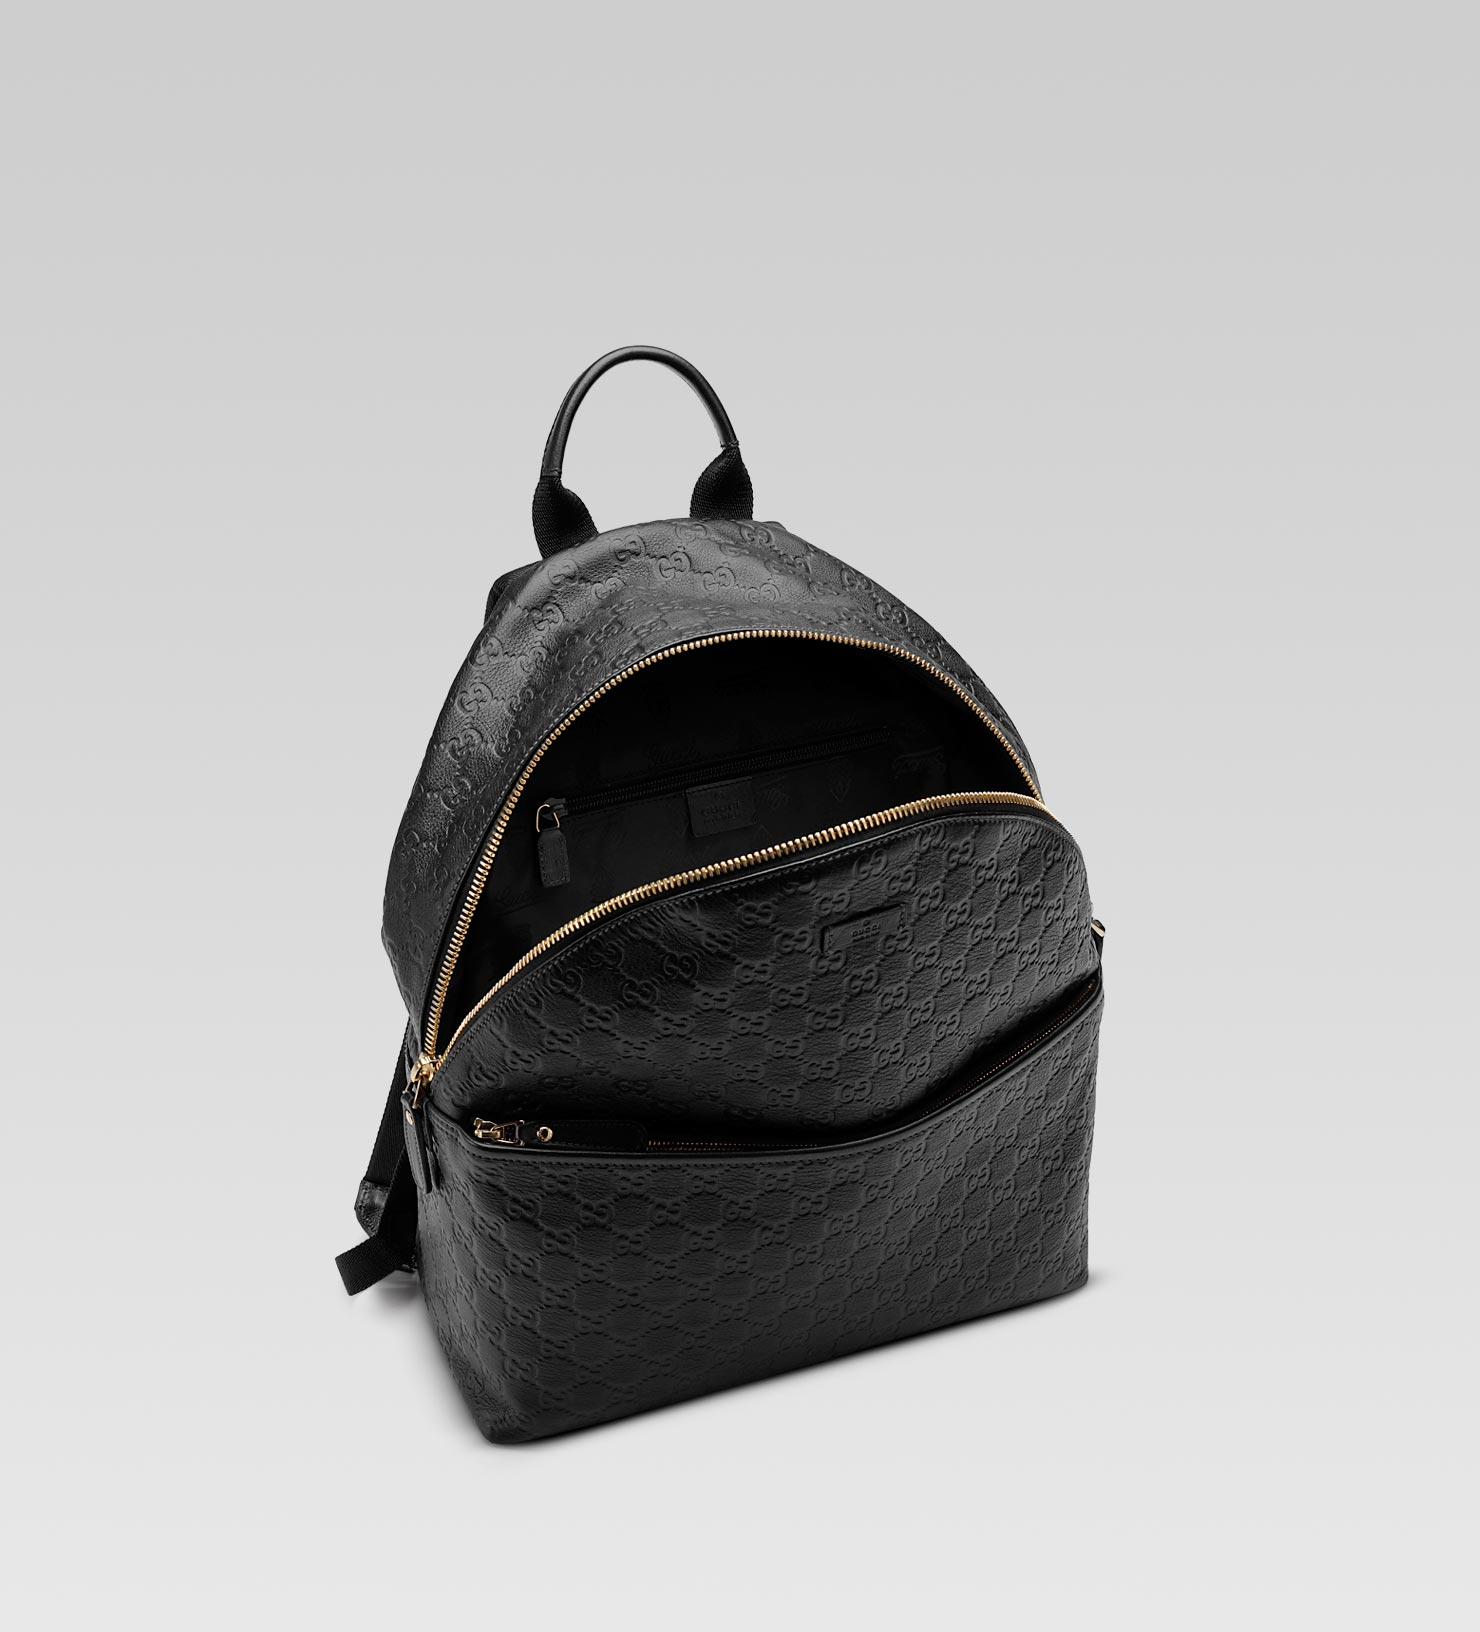 Gucci Zip Backpack in Black for Men - Lyst 5ff12433ce181